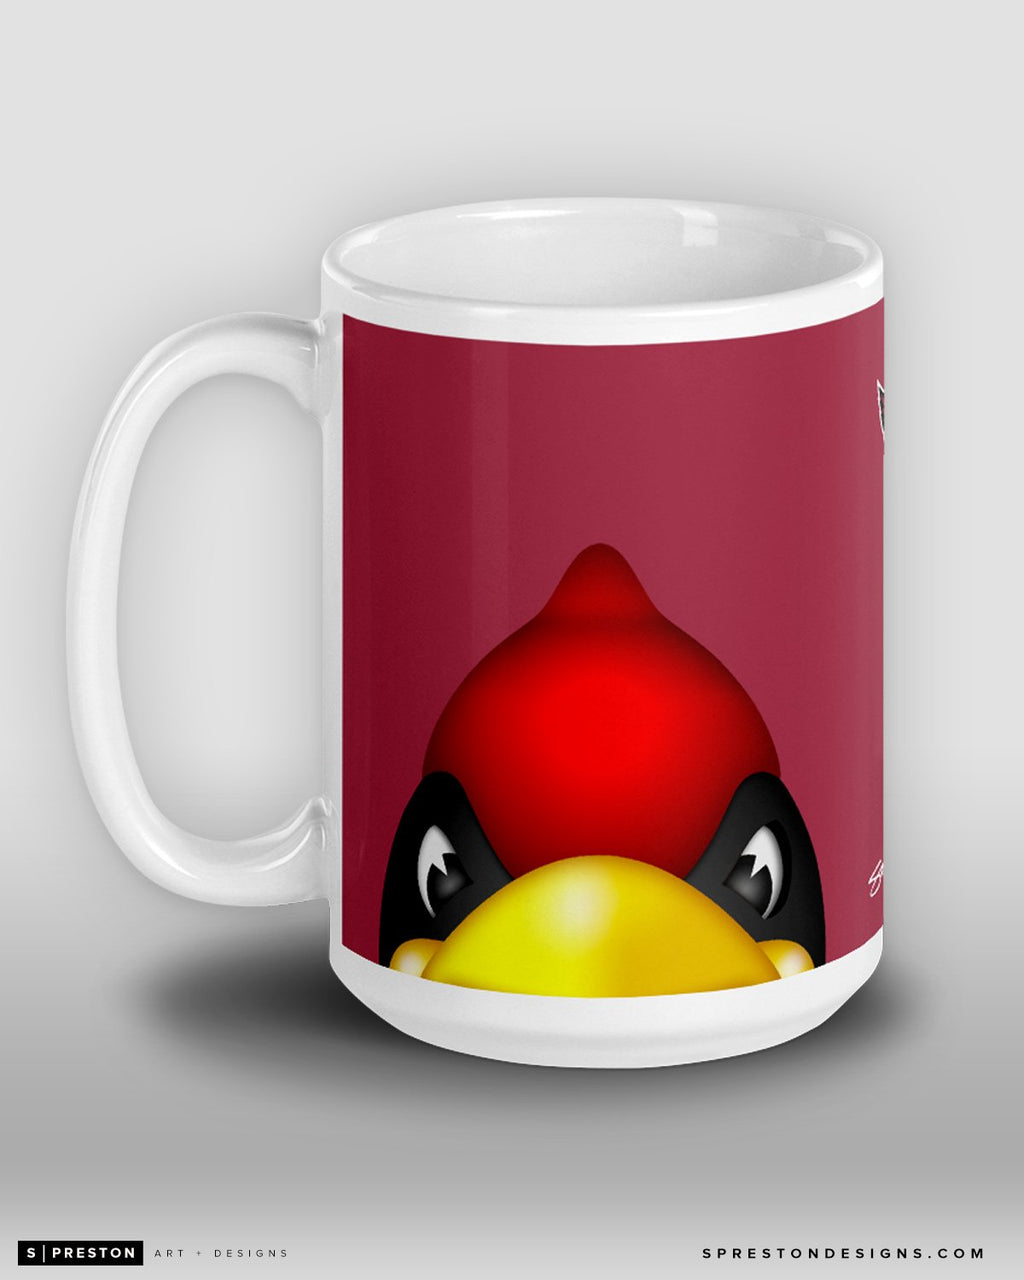 Minimalist Big Red Coffee Mug Arizona Cardinals Mascot  - S. Preston